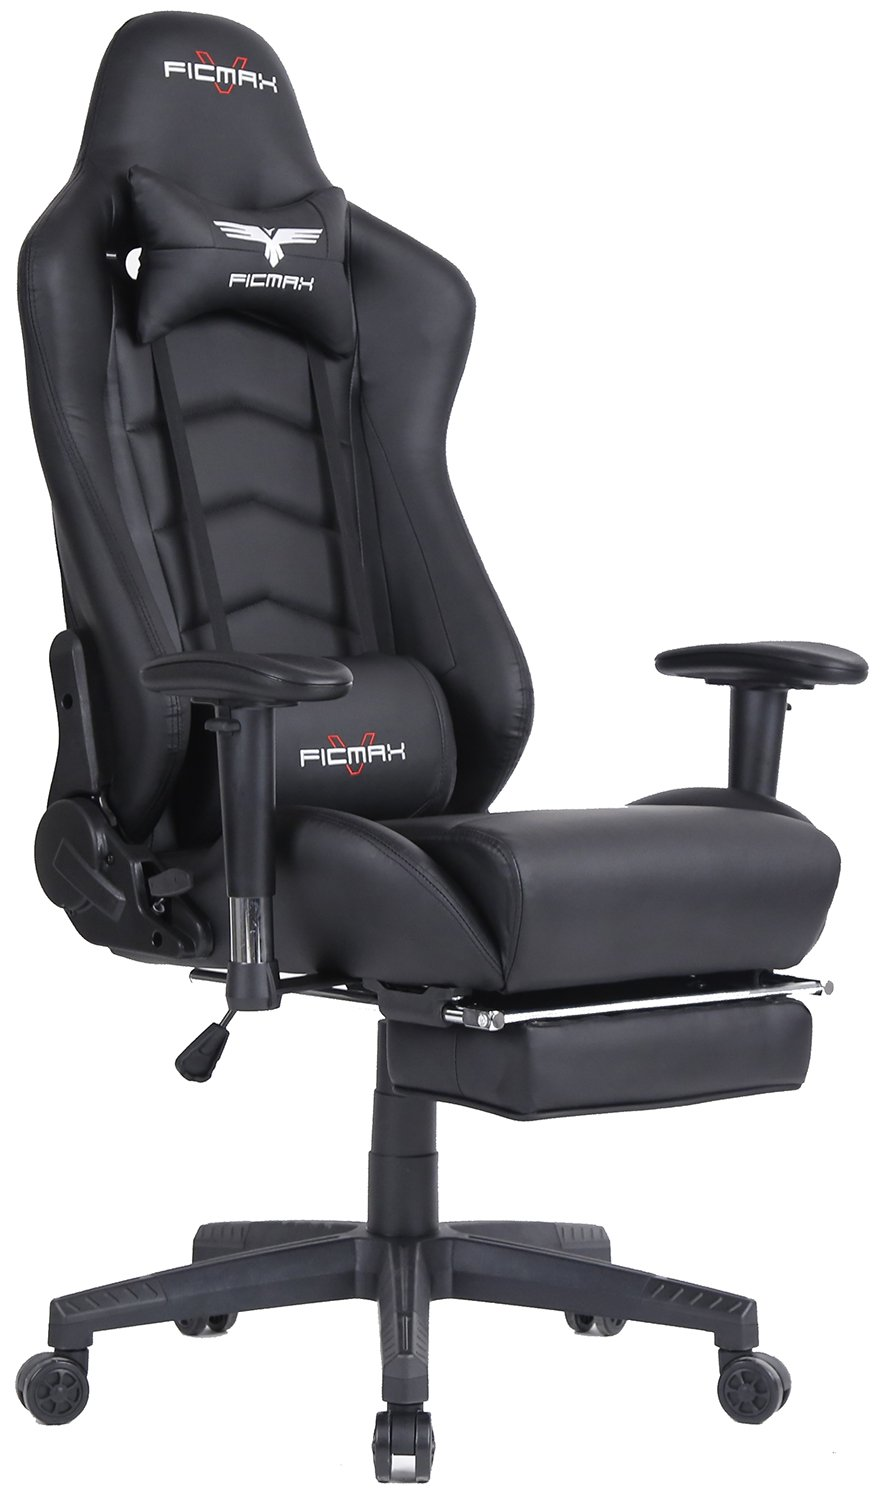 Ficmax Ergonomic High-back Large Size Office Desk Chair Swivel Black PC Gaming Chair with Lumbar Massage Support and Retractible Footrest by Ficmax